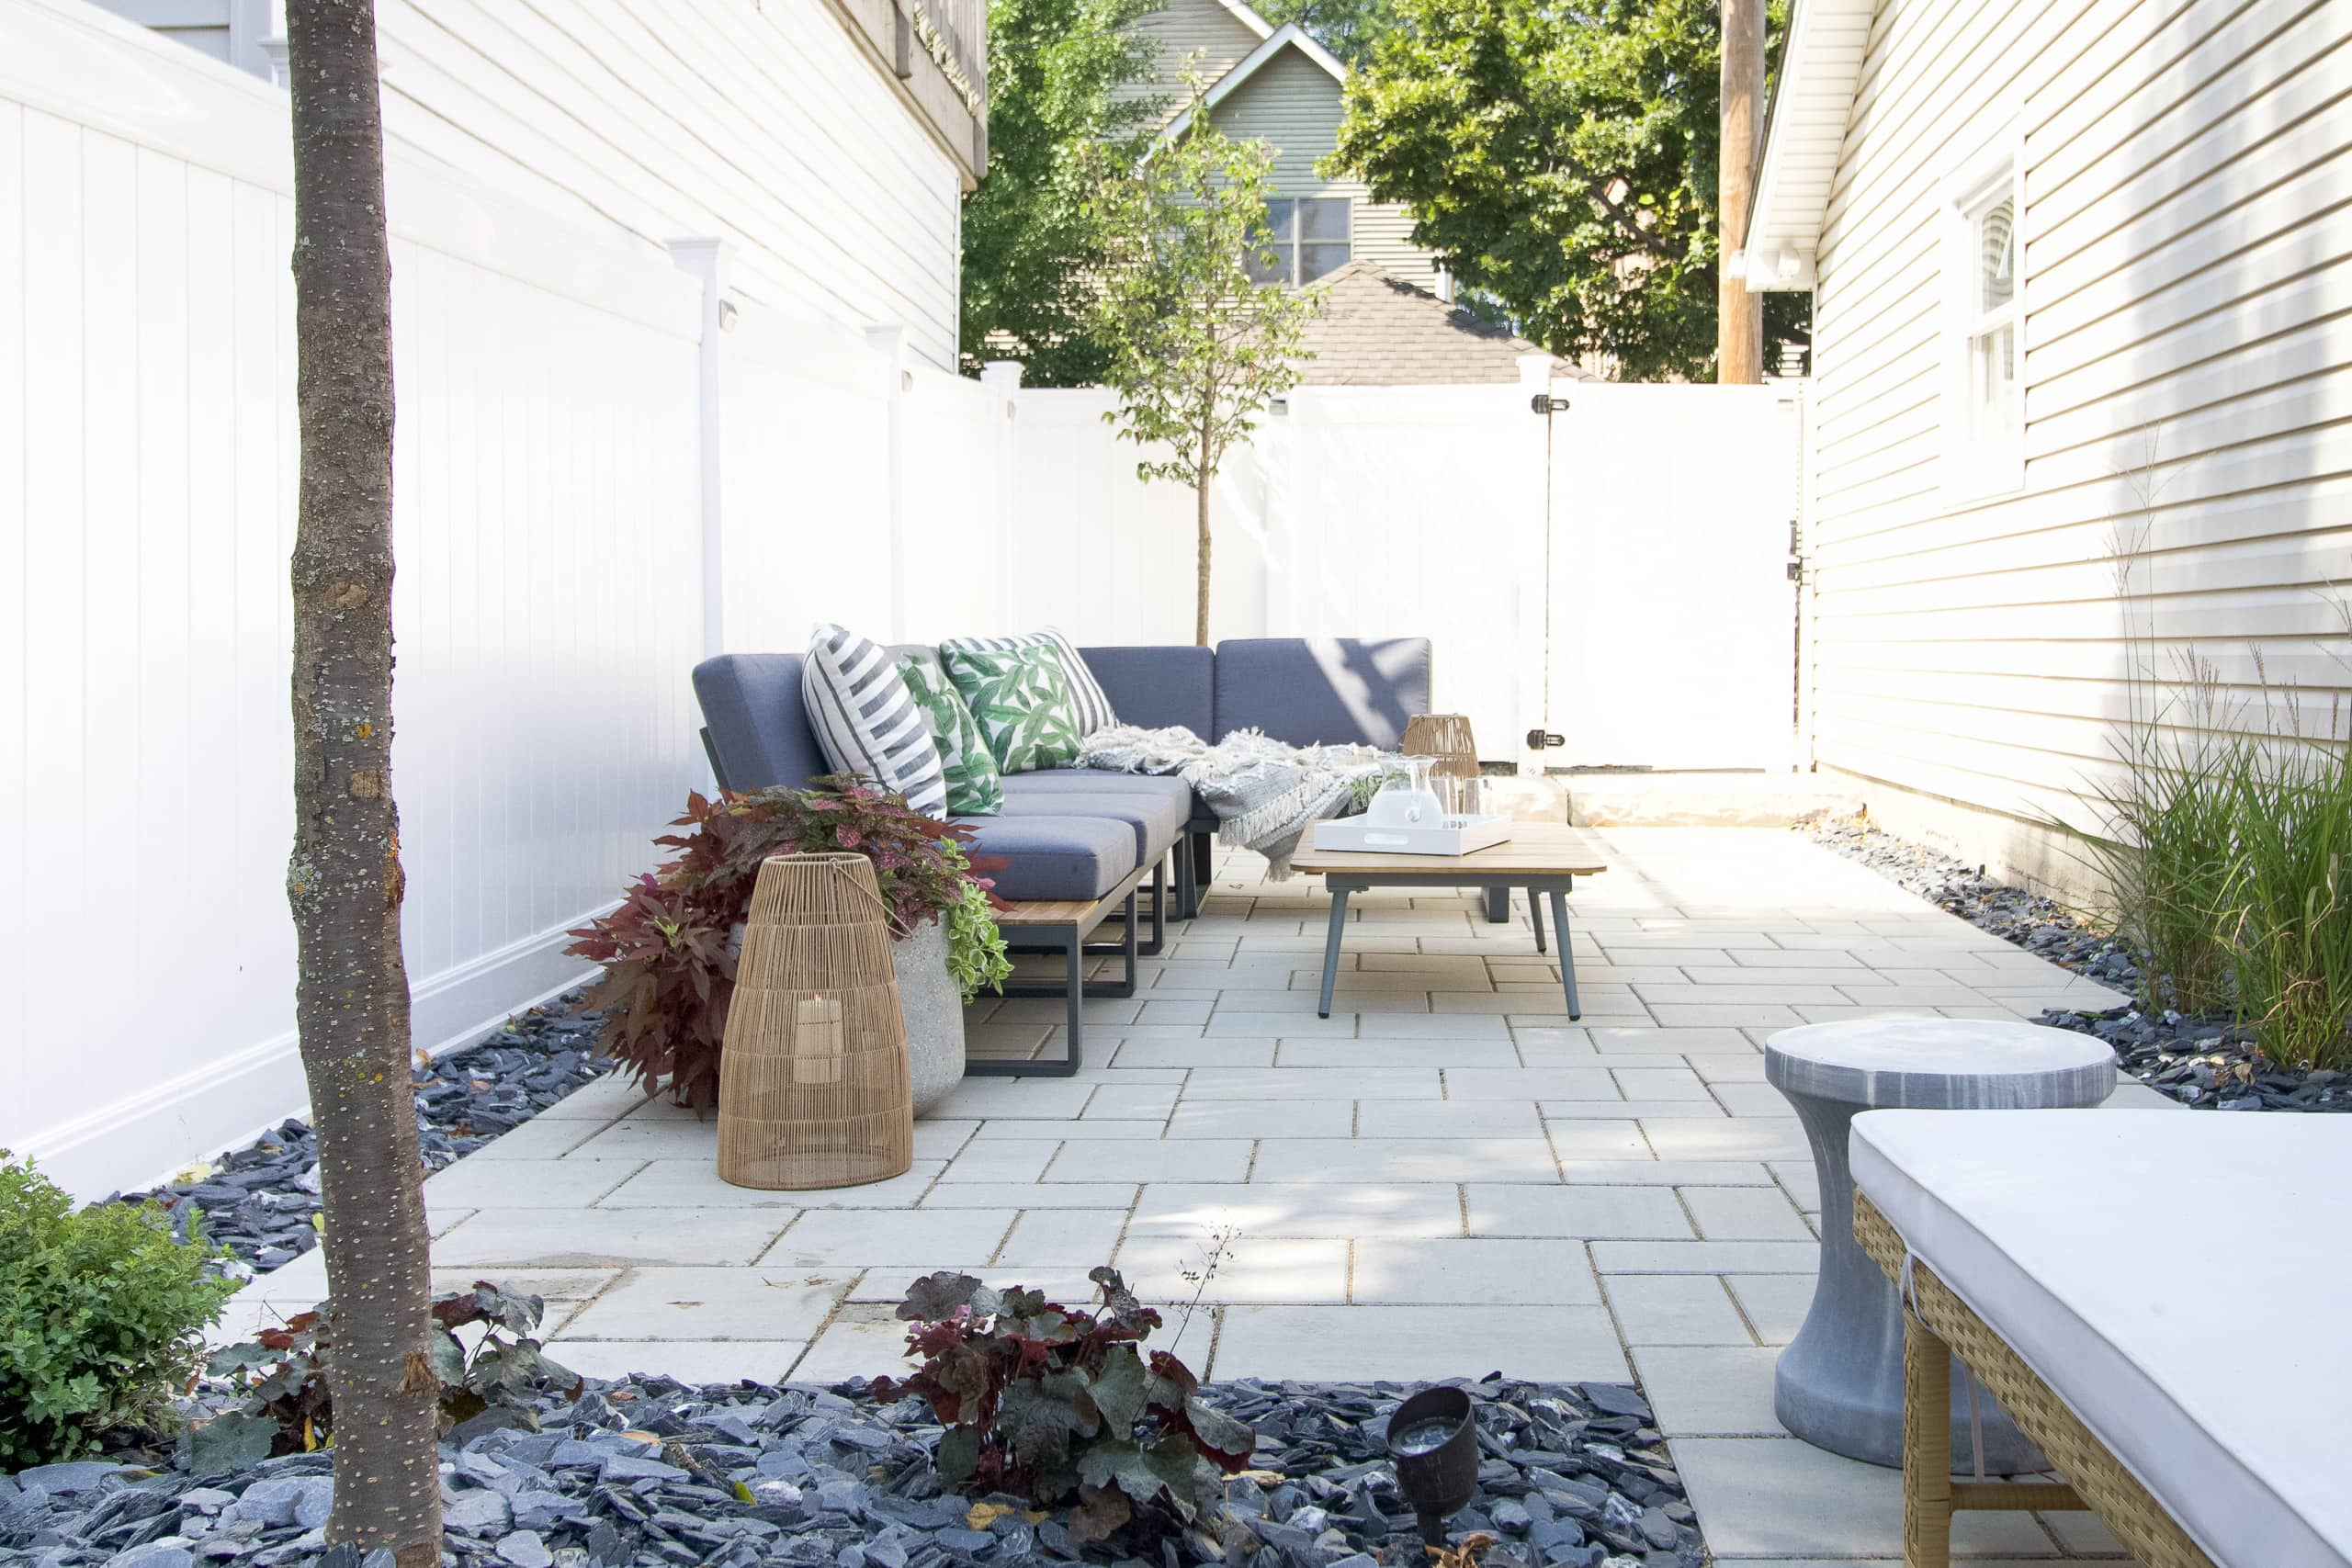 Our new outdoor sectional for our backyard patio